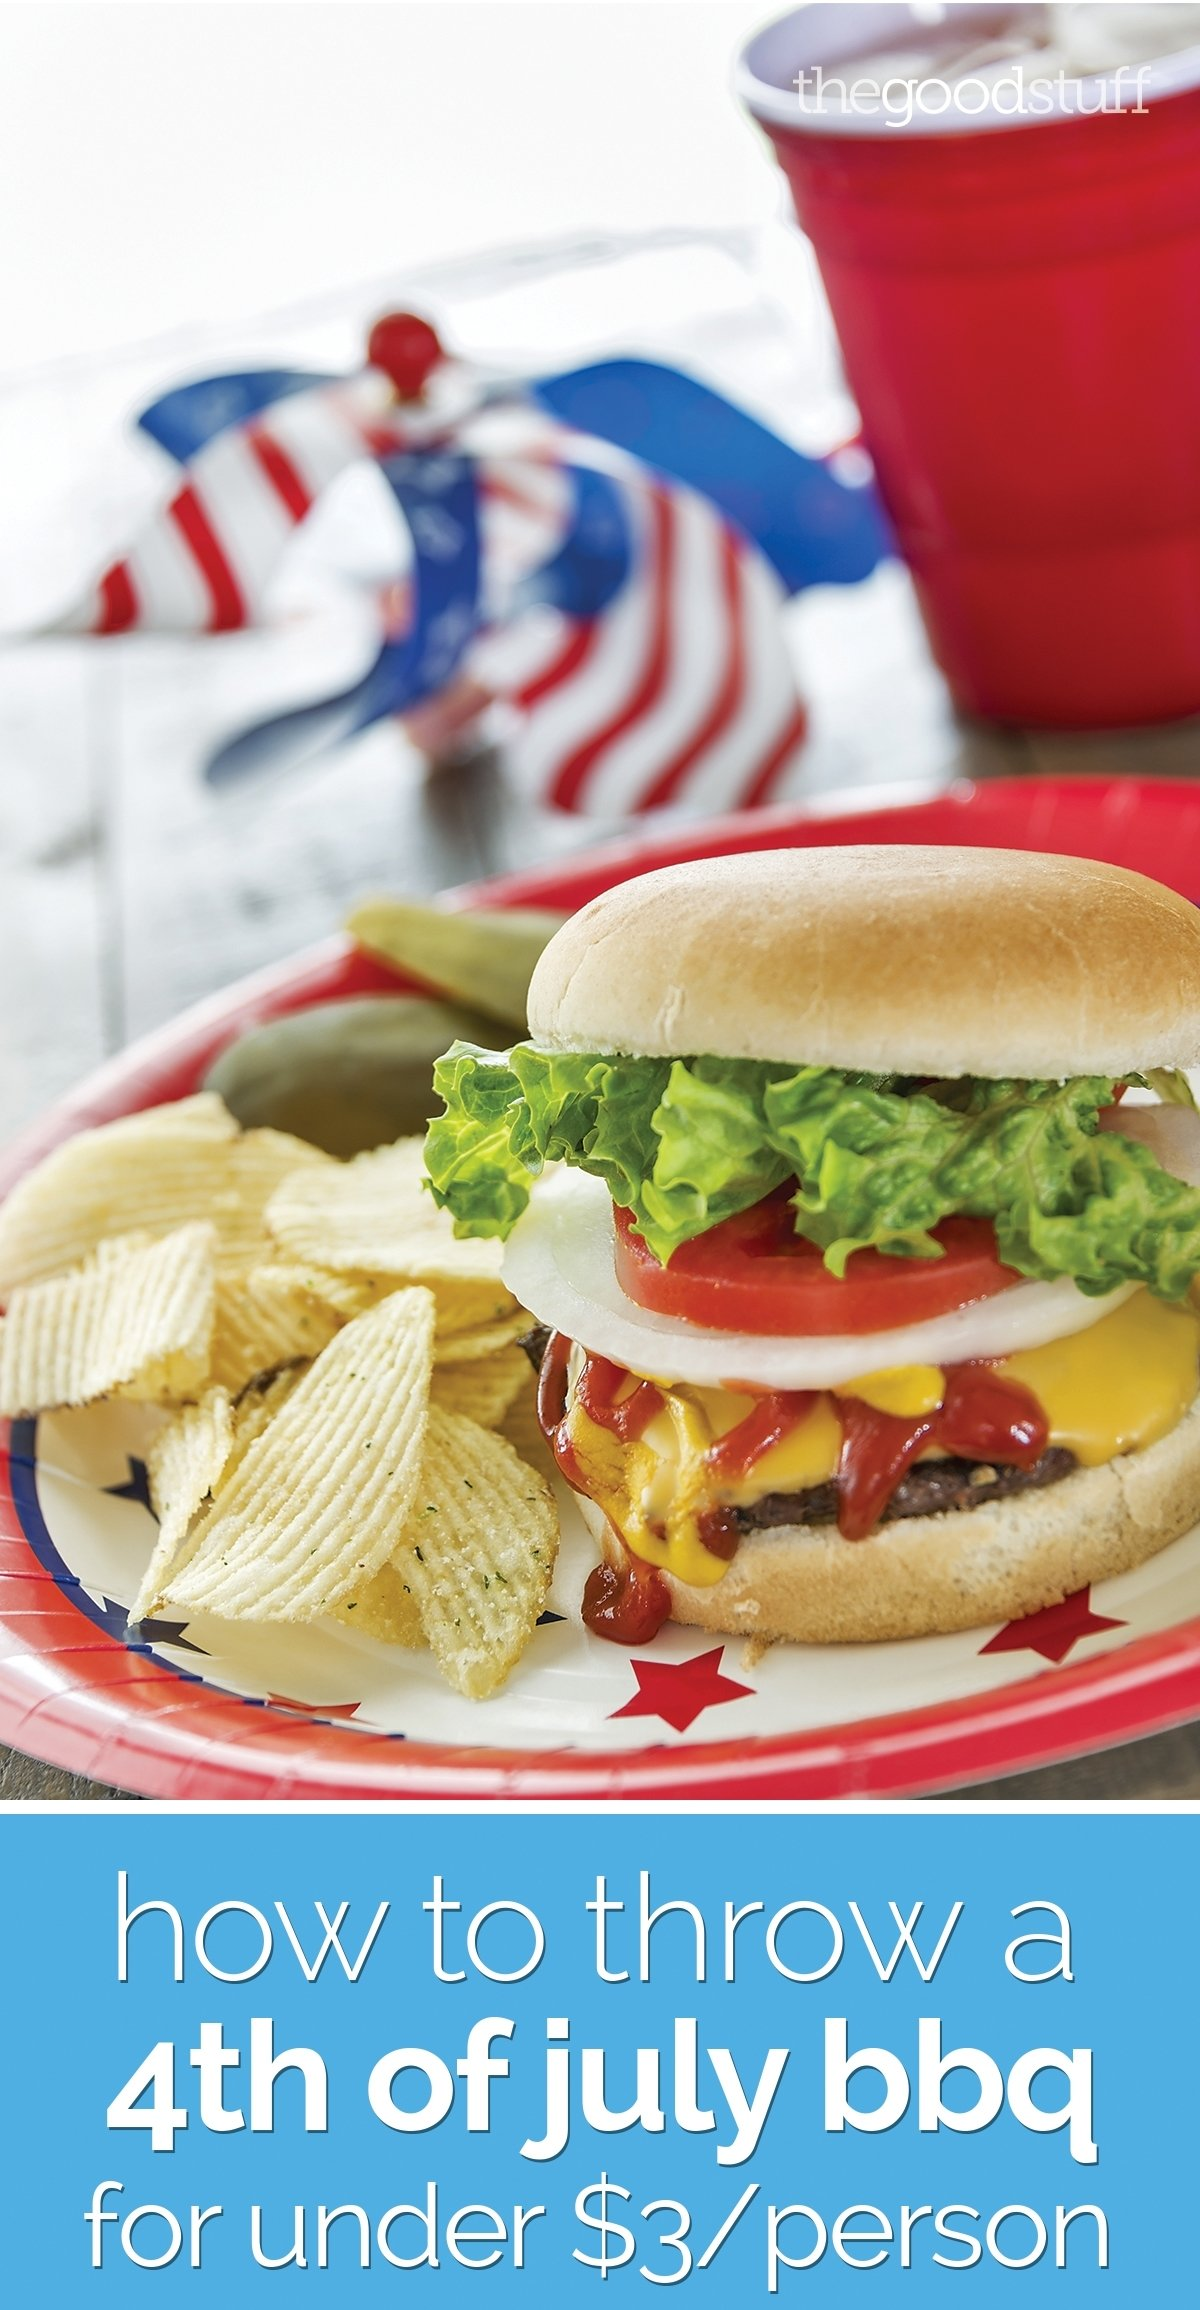 10 Lovely 4Th Of July Bbq Menu Ideas throw a 4th of july bbq for under 3 per person thegoodstuff 2020